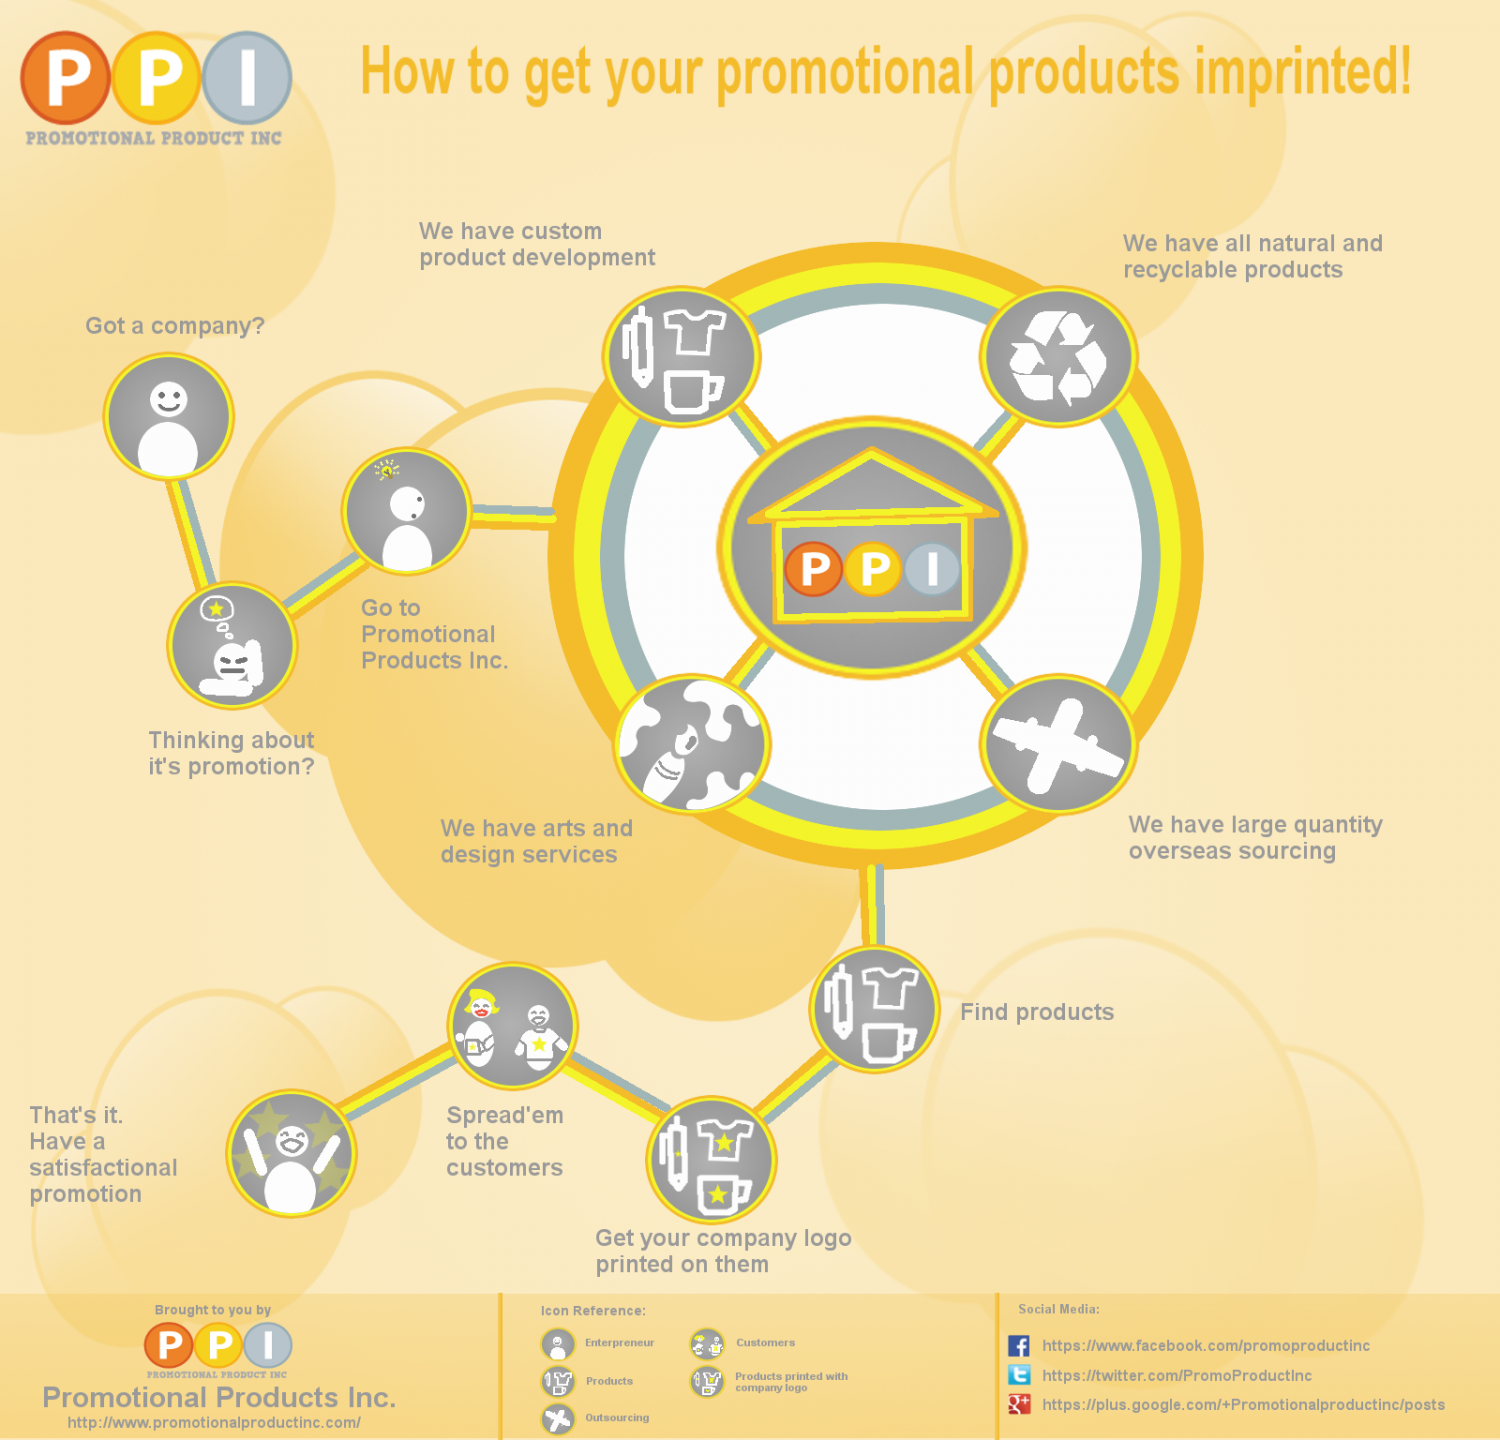 GET YOUR PROMOTIONAL PRODUCTS IMPRINTED Infographic